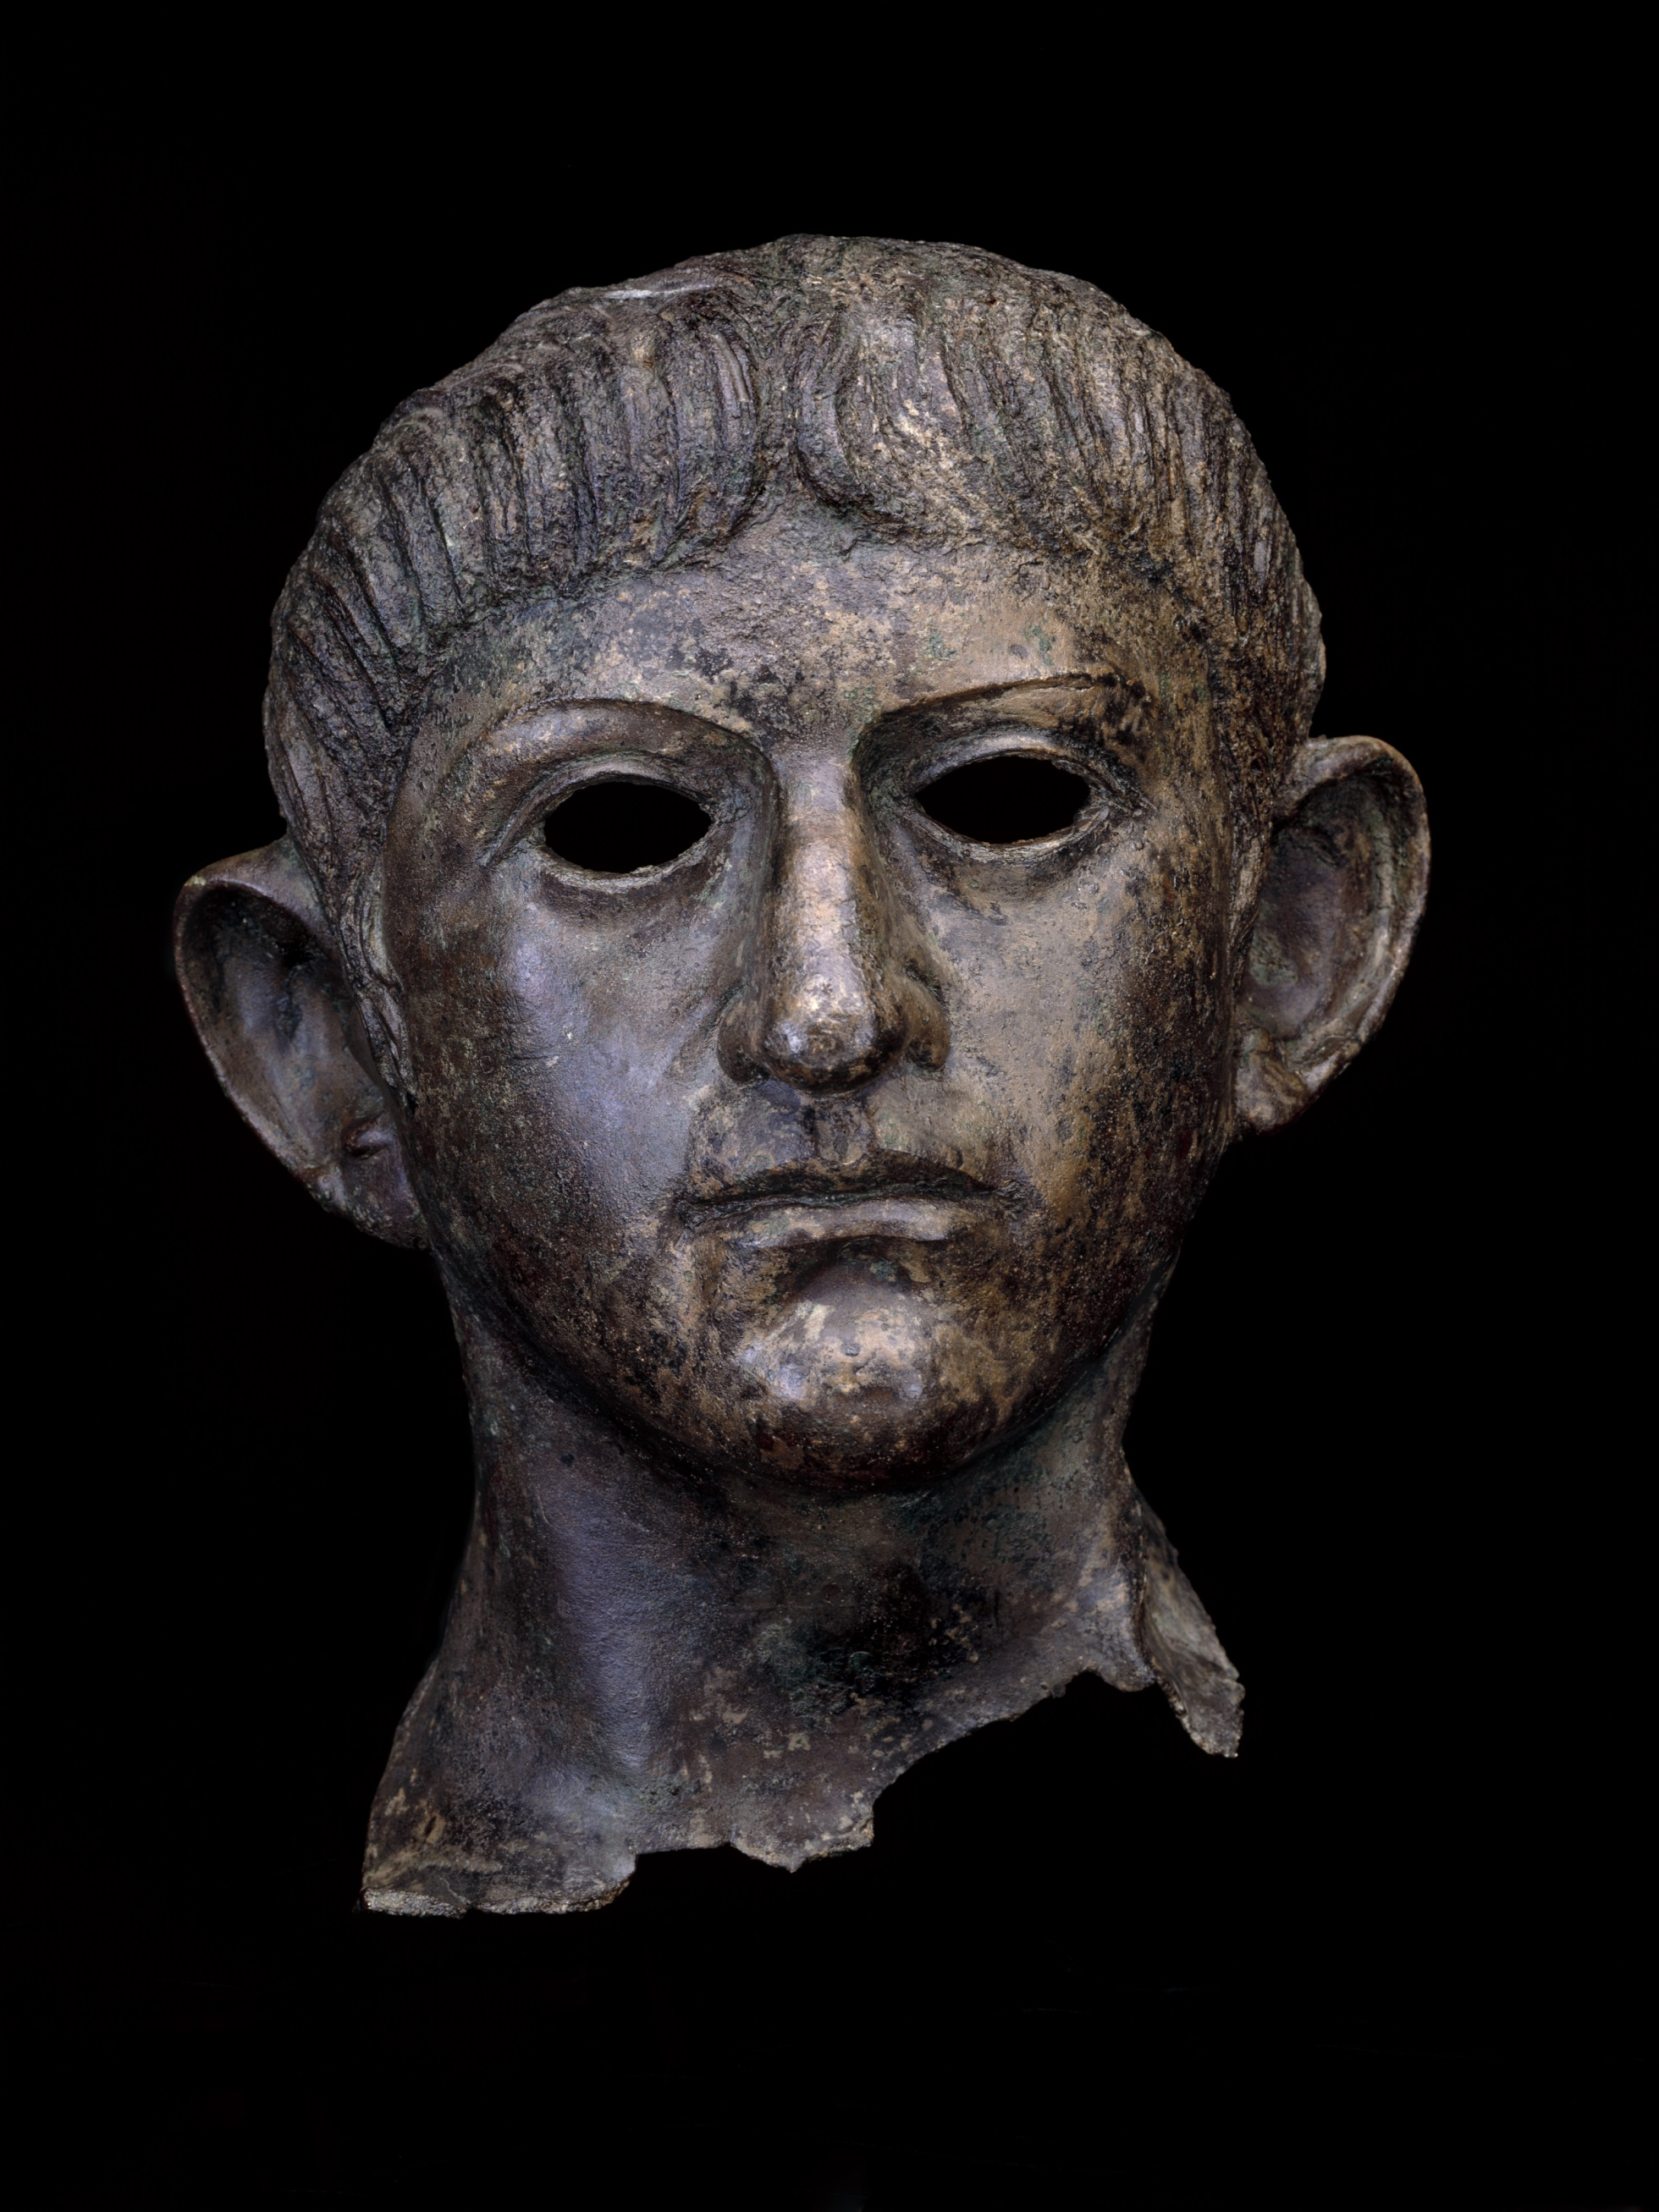 Dark brown copper head of the emperor Nero, with hollow eyes and sticking out ears looking at the viewer.